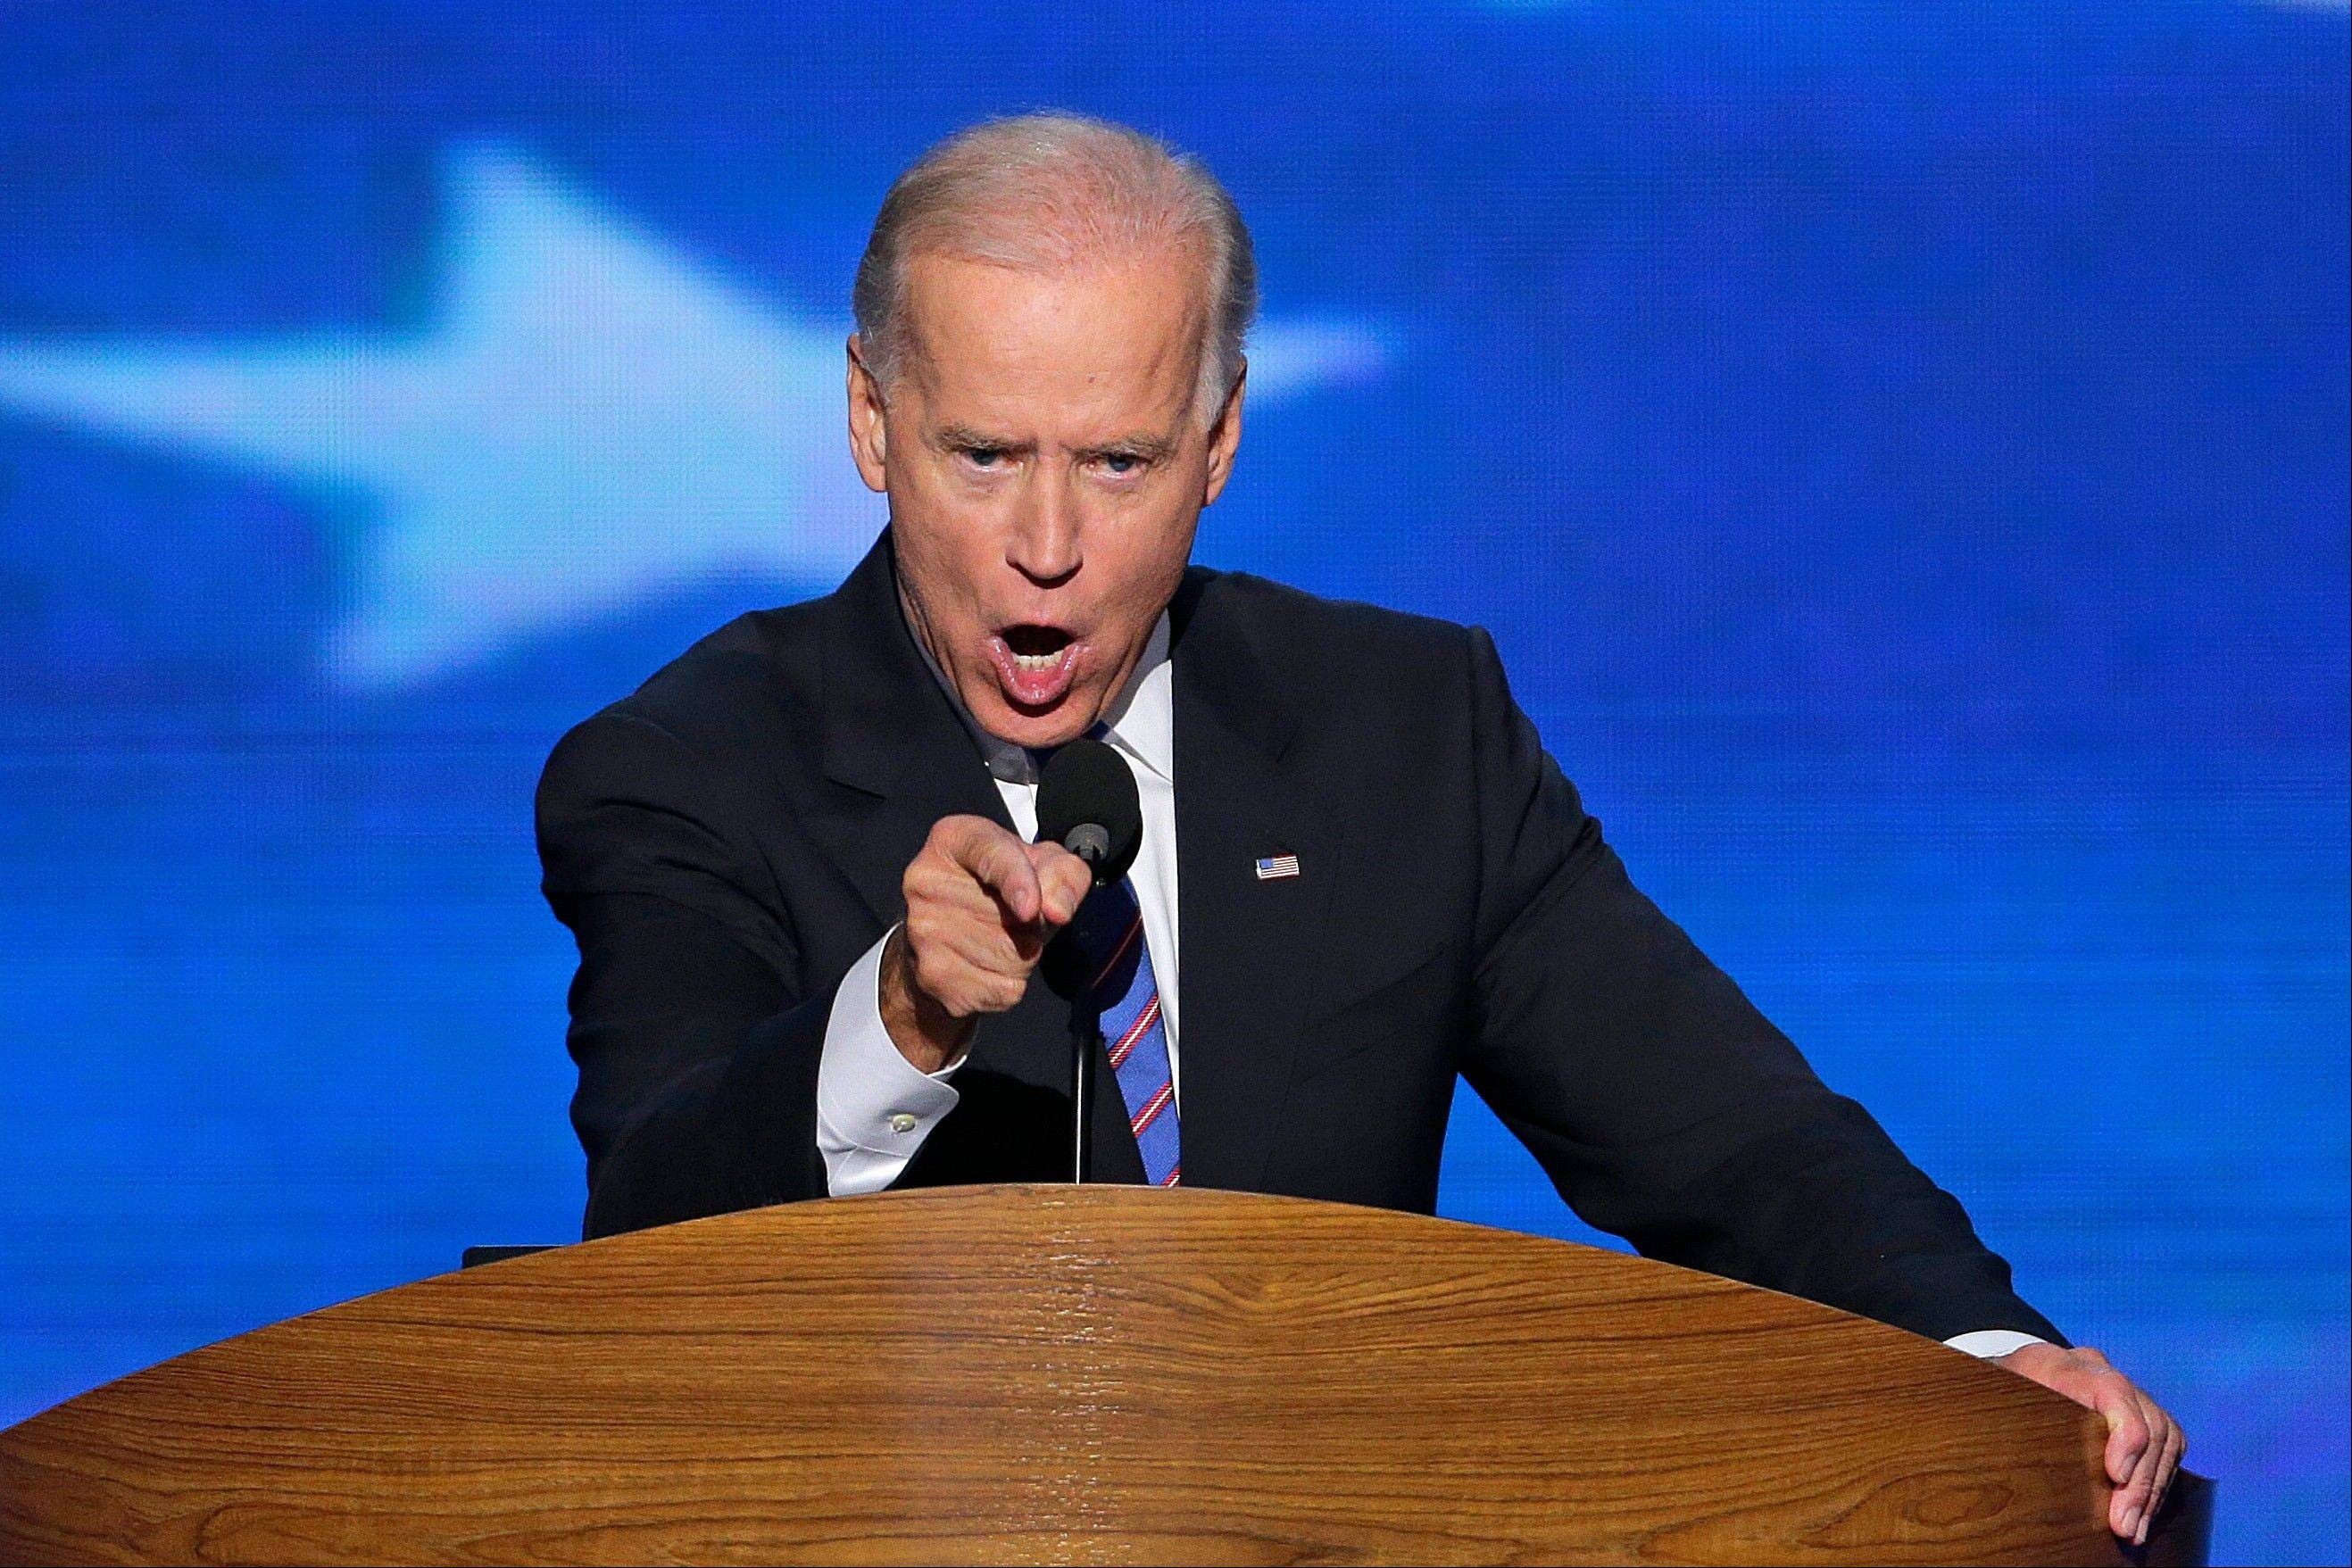 Vice President Joe Biden addresses the Democratic National Convention in Charlotte, N.C., on Thursday, Sept. 6, 2012.